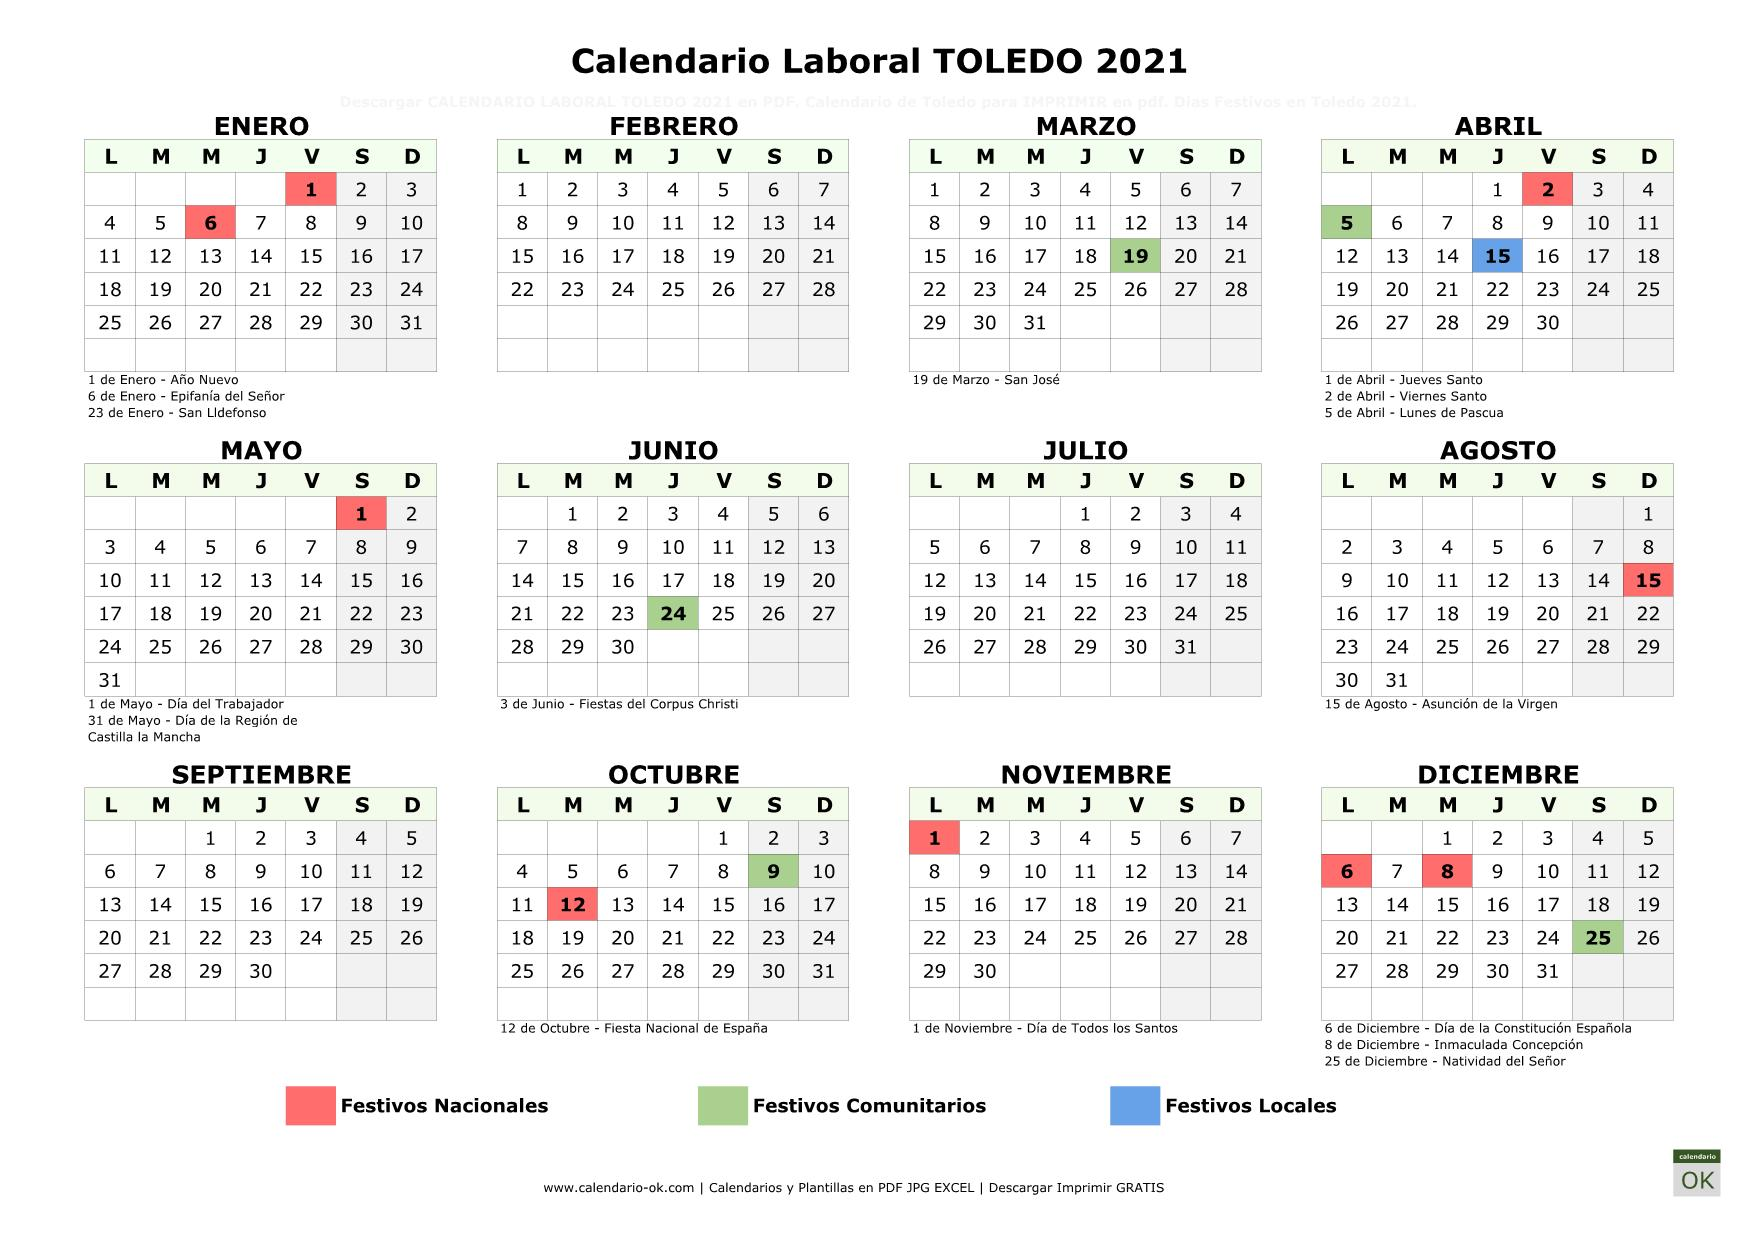 Calendario Laboral Toledo 2021 horizontal